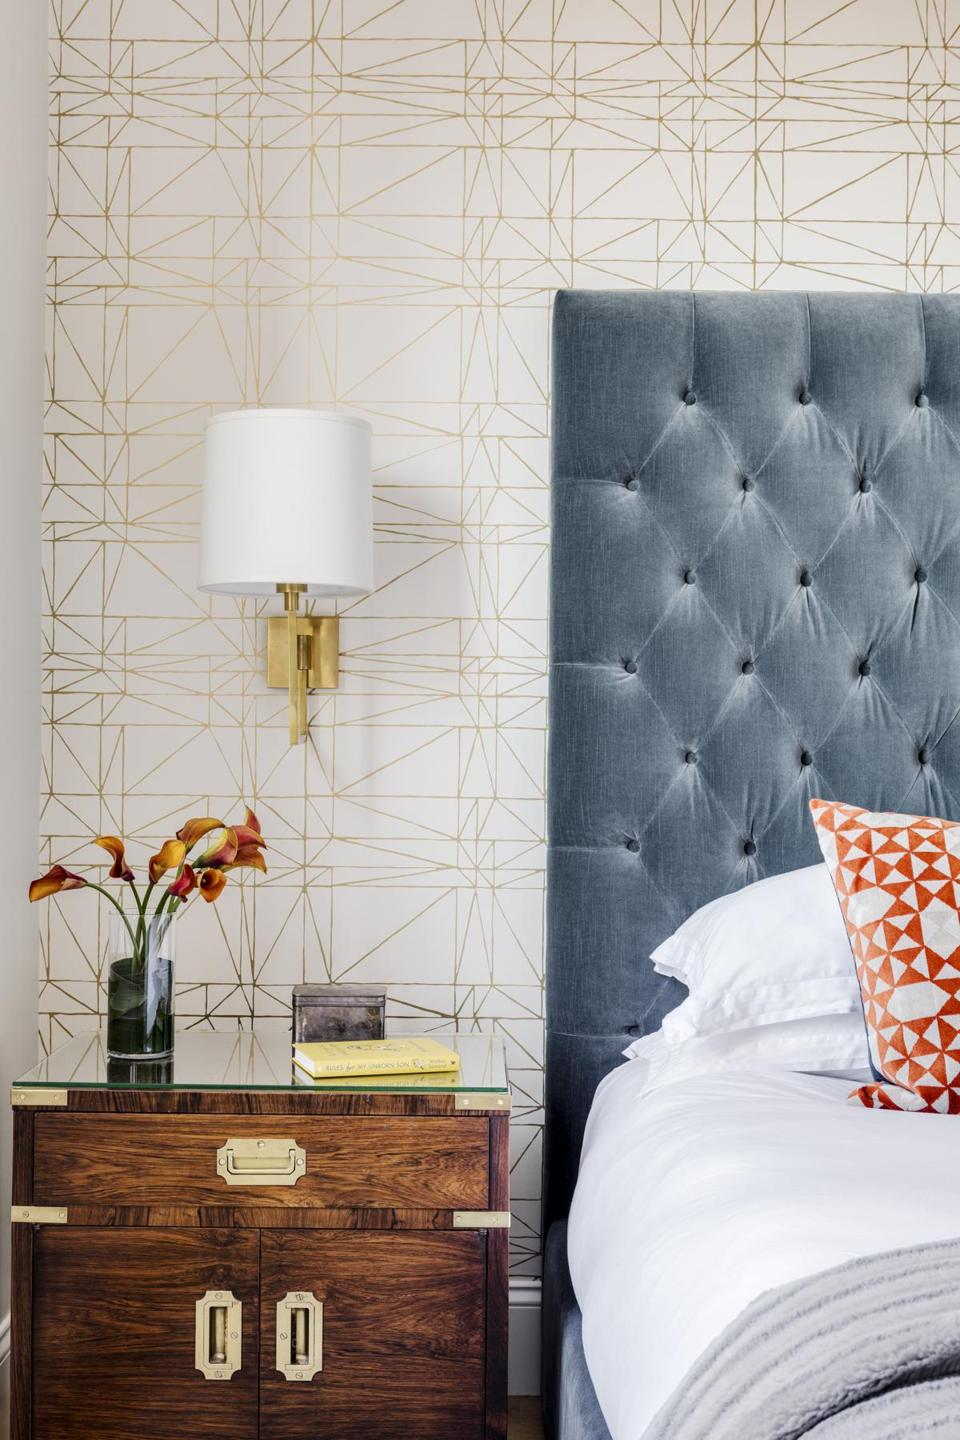 The tufted headboard of the Restoration Hardware platform bed is upholstered in slate blue velvet. Caroline chose the gold metallic geometric patterned Hygge & West wallpaper. The vintage John Stuart campaign-style nightstand is one of a pair Andrew already owned, bought online from InCollect.